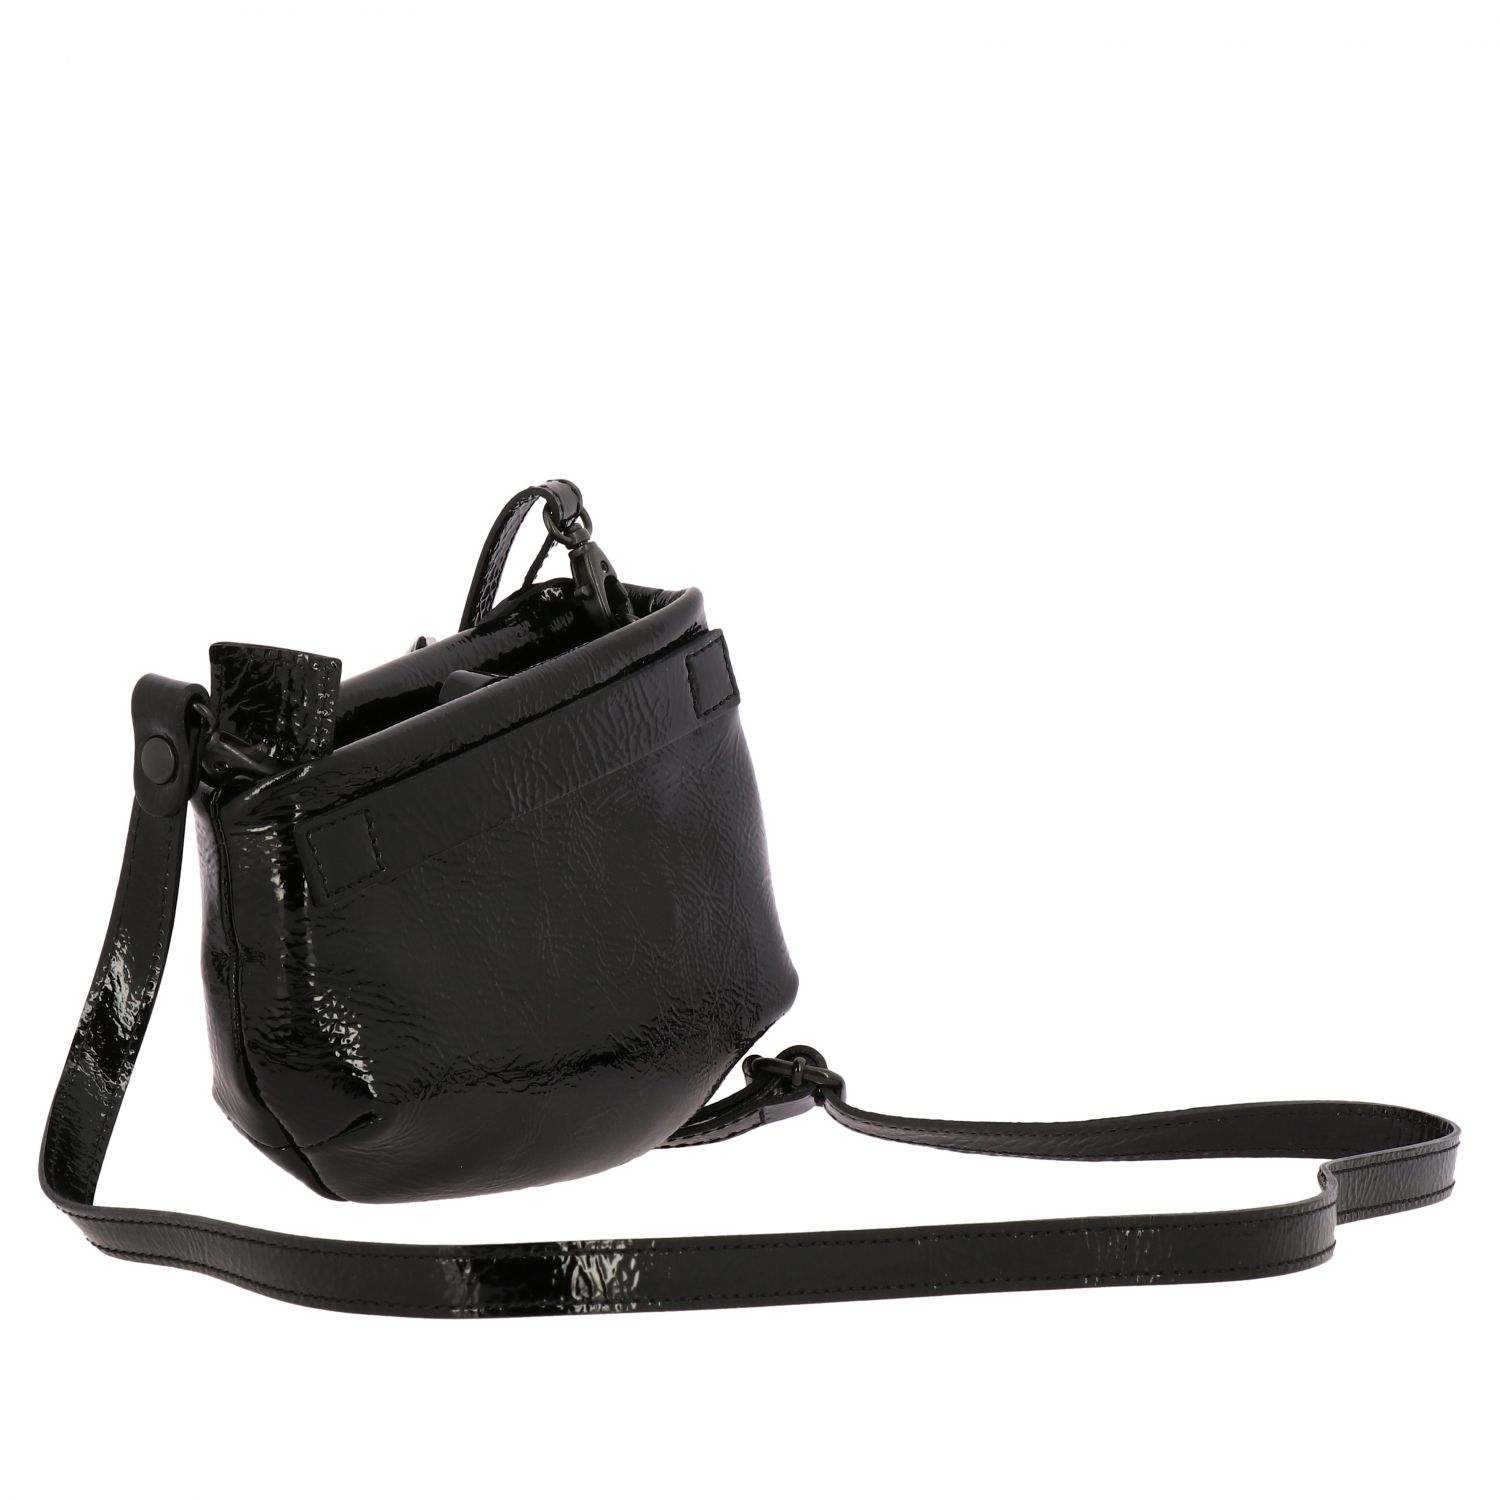 Marsell Fantasmino shoulder bag in patent leather black 3